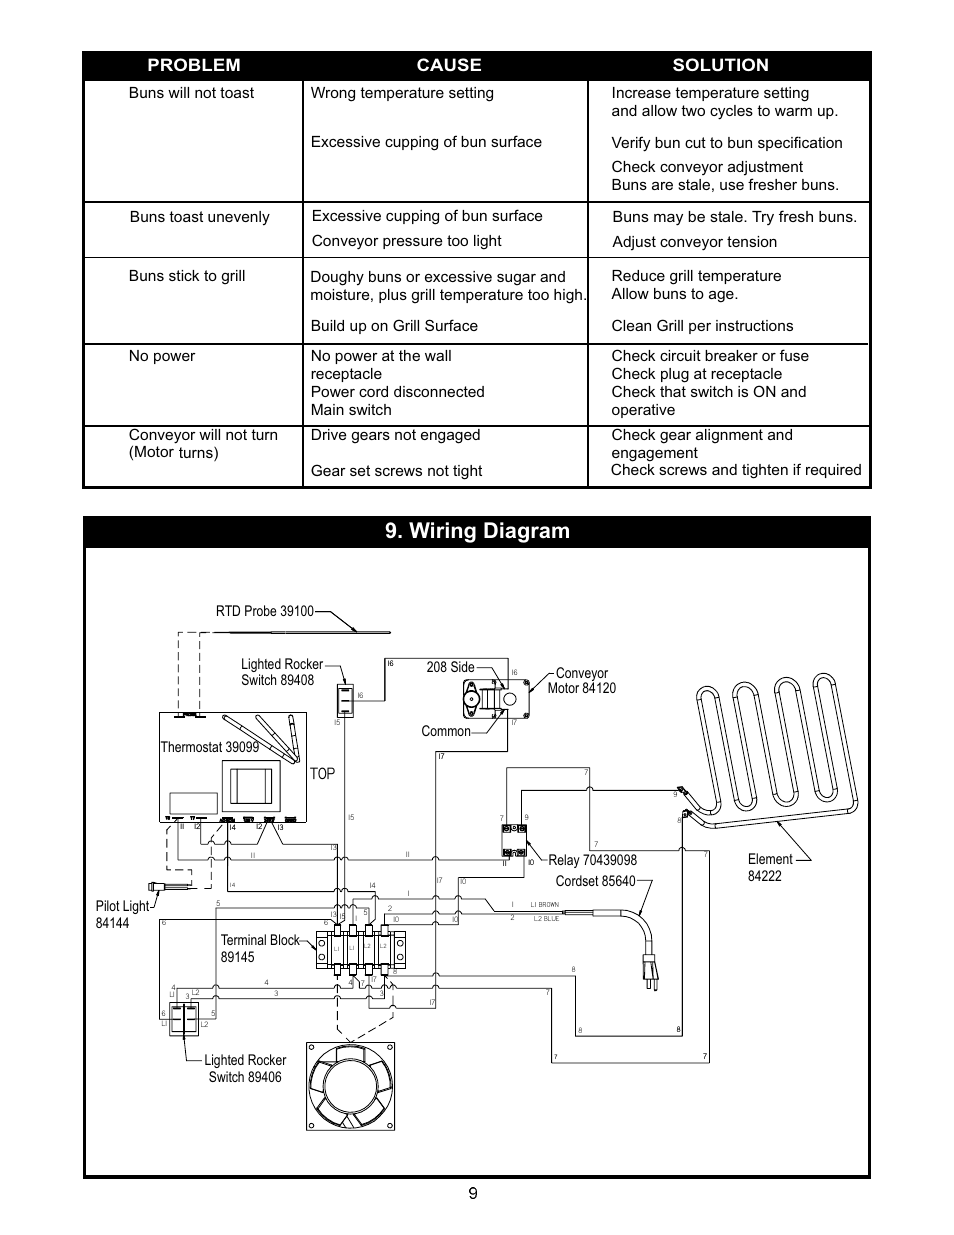 hight resolution of wiring diagram problem cause solution apw wyott m95 2 jib user manual page 9 12